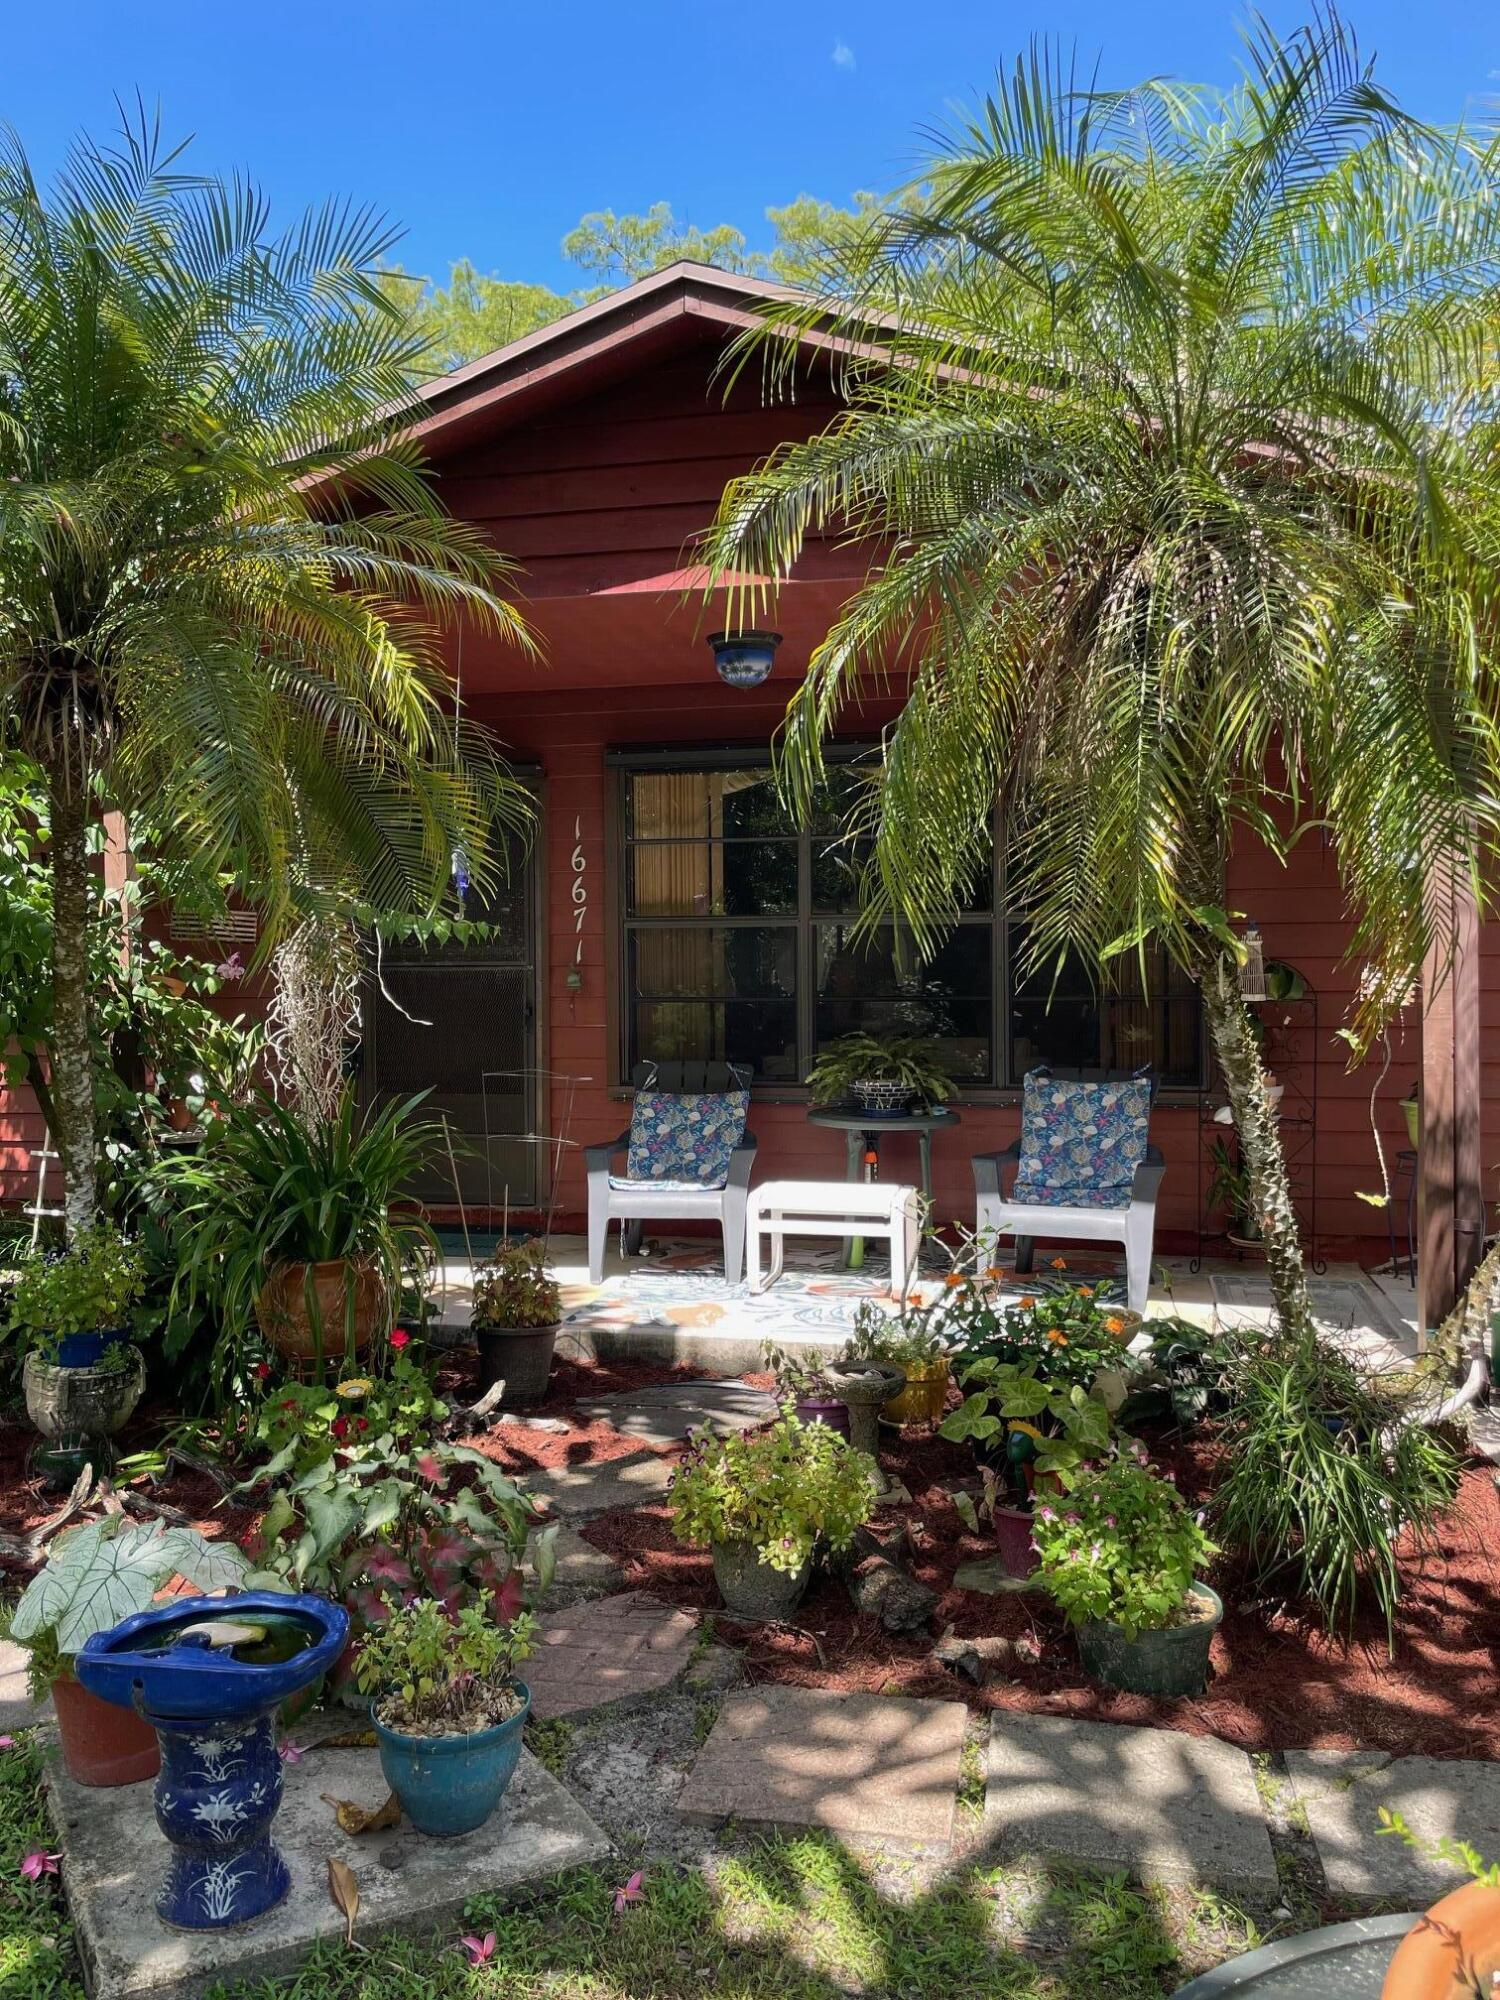 This charming one-story home, at the end of a winding road, nestled in amongst tropical landscaping and flowering trees, is your next home!  The fire pit welcomes you to join in conversation as you take in the beauty of the day. The current owner is an artist, who enjoys the screened patio for natural light and inspiration, overlooking the pond. High ceilings in the living area stretch the feeling of space. This 3 bedroom, 2 bath, 2 car garage, dining room, living room, all in a great area of Jupiter Farms. A/C and Water Heater (2019), Roof (2005). 1.25 acres...Come and feel nature, inside and out!!